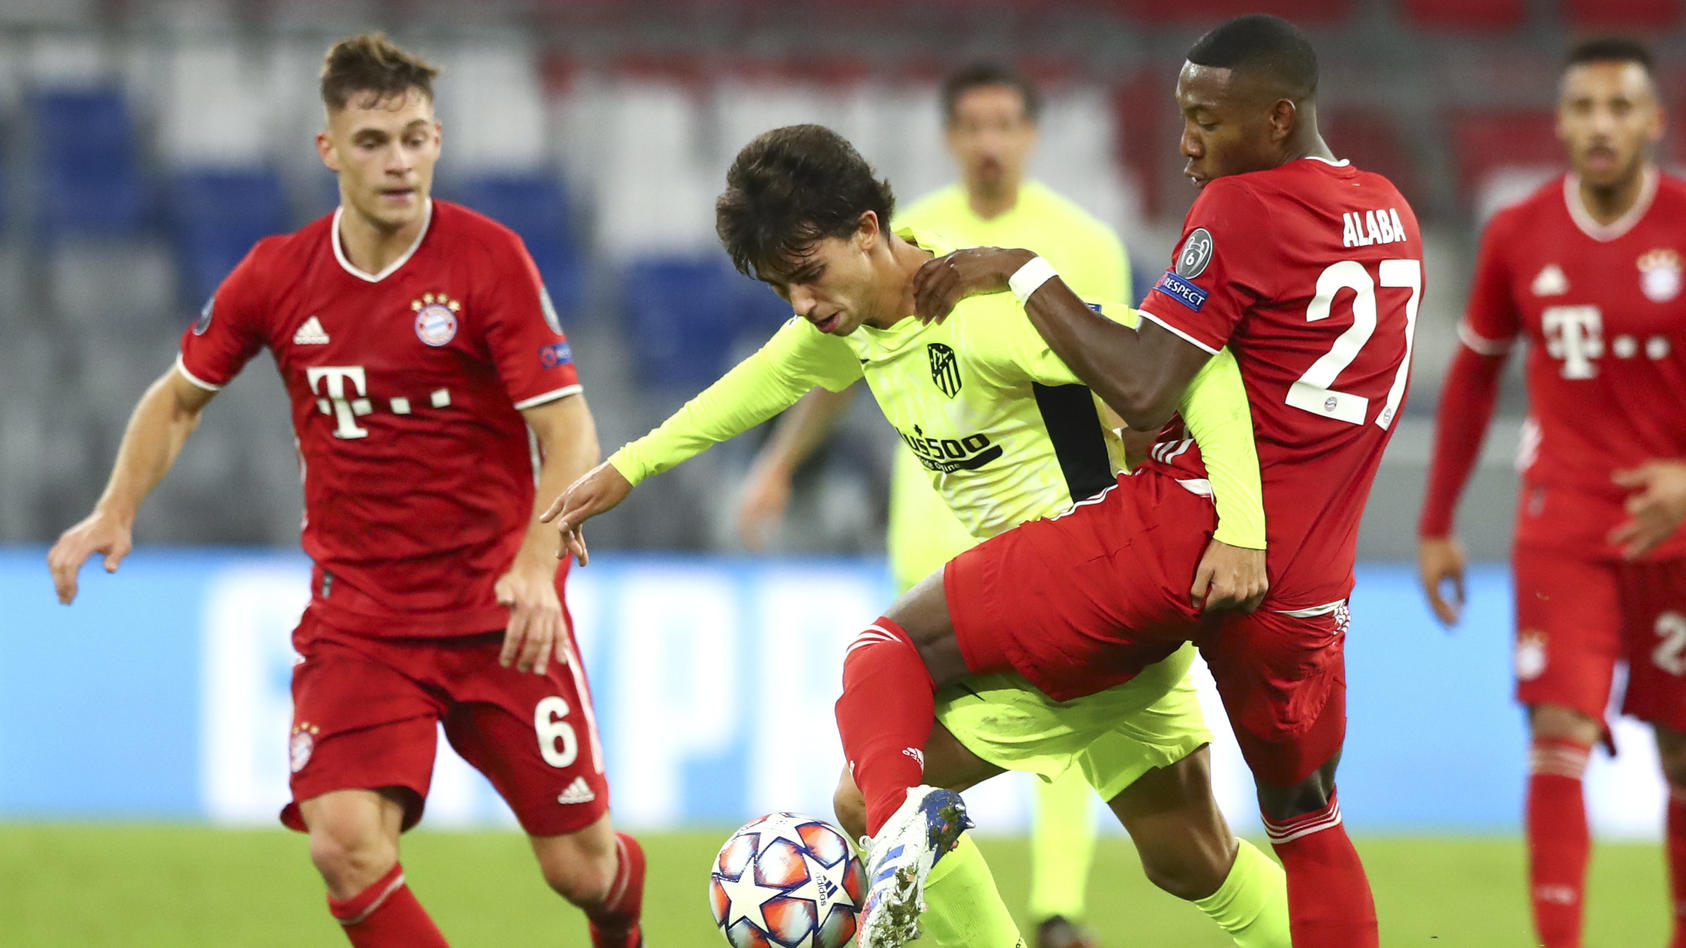 David Alaba attackiert Joao Felix. Links Joshua Kimmich.